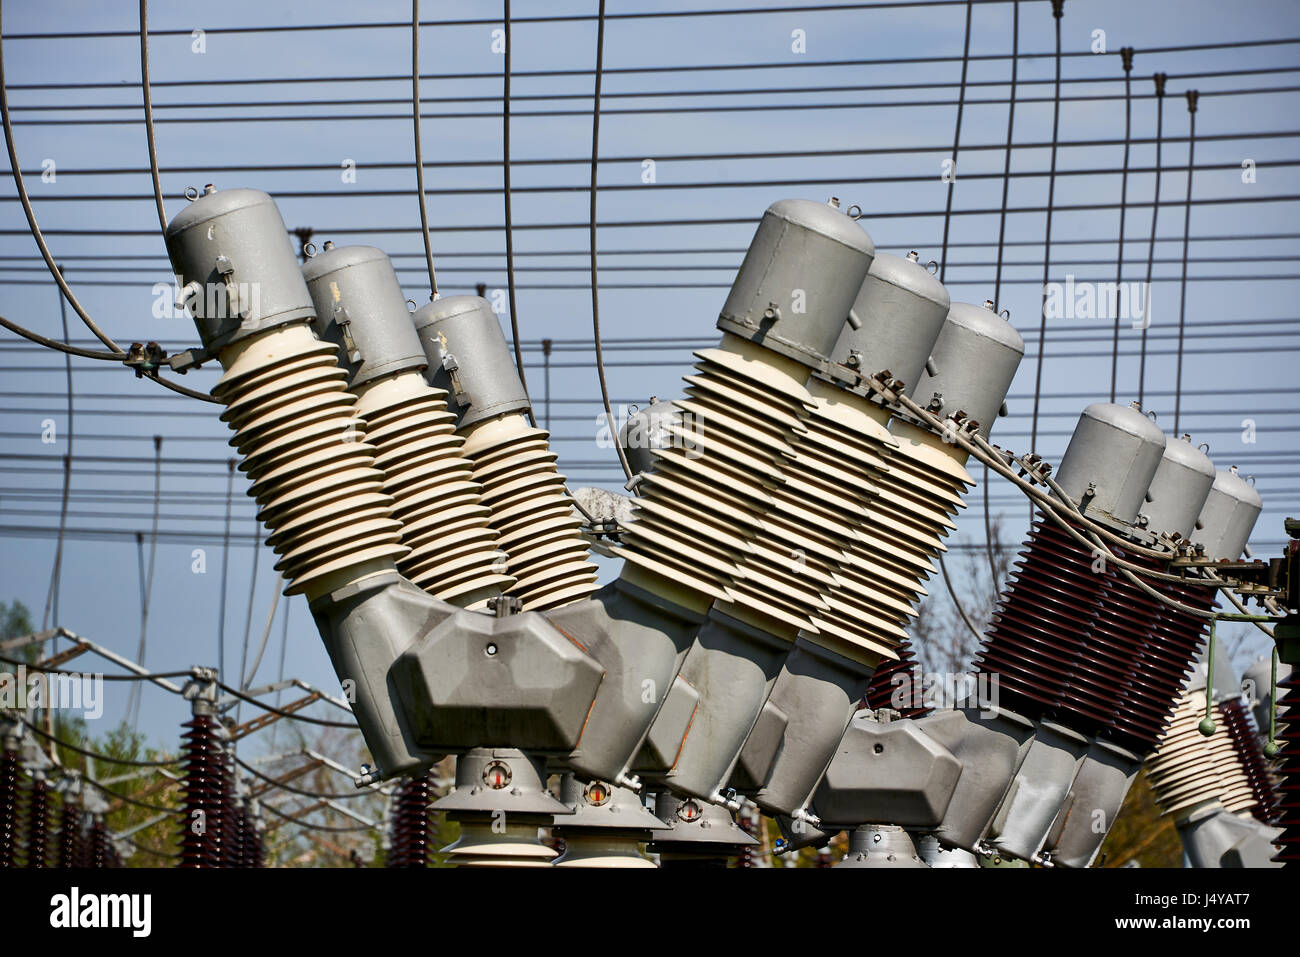 electricity sub transformer station - Stock Image